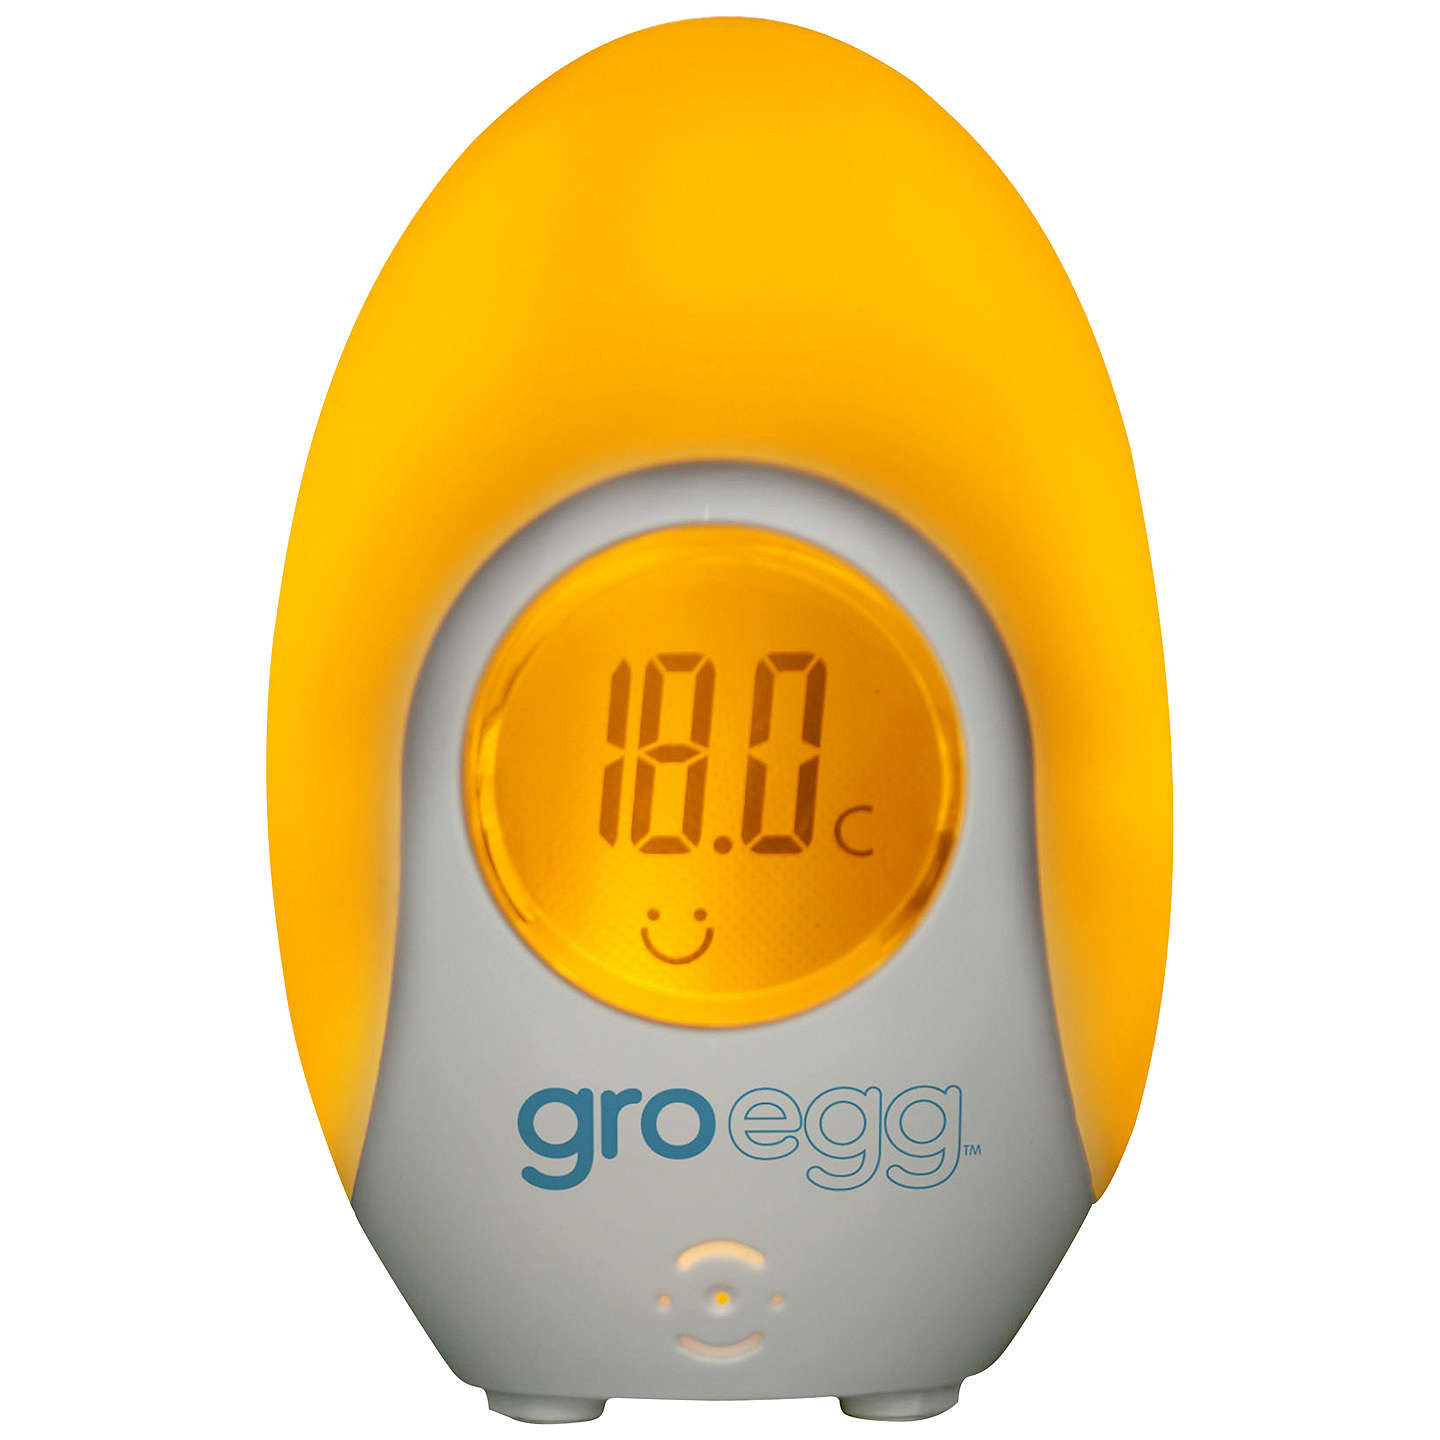 BuyGro Company Gro Egg Baby Thermometer and Night Light Online at johnlewis.com